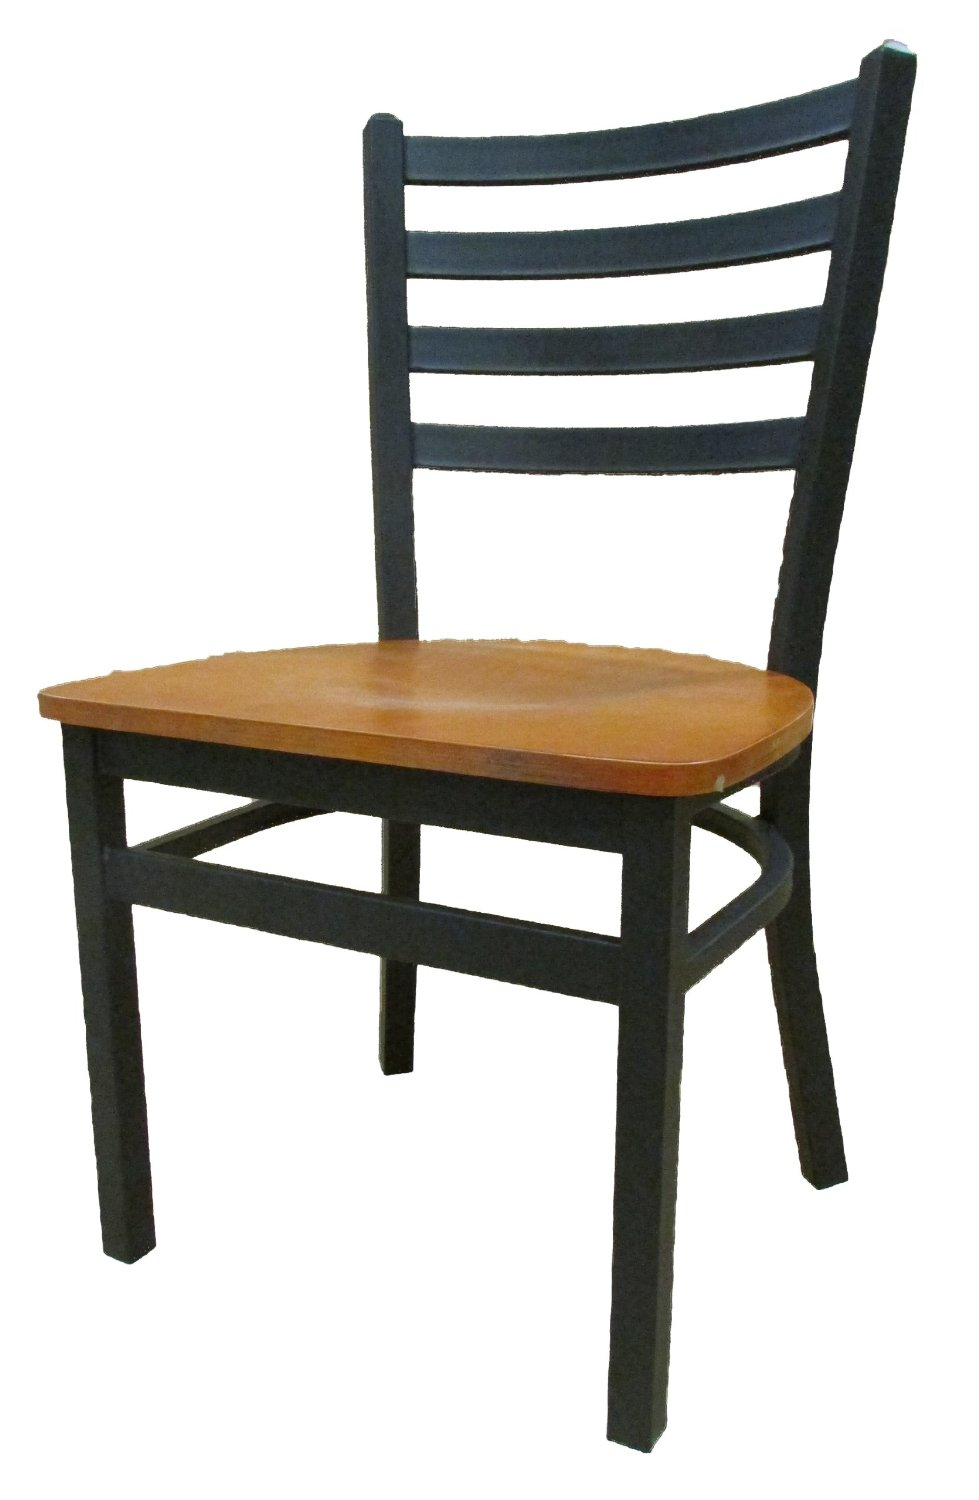 "Oak Street Manufacturing SL3160-C Metal Frame XL Ladderback Dining Chair with Cherry Wood Seat, 19-1/4"" Width x 46"" Height x 17-1/2"" Depth"